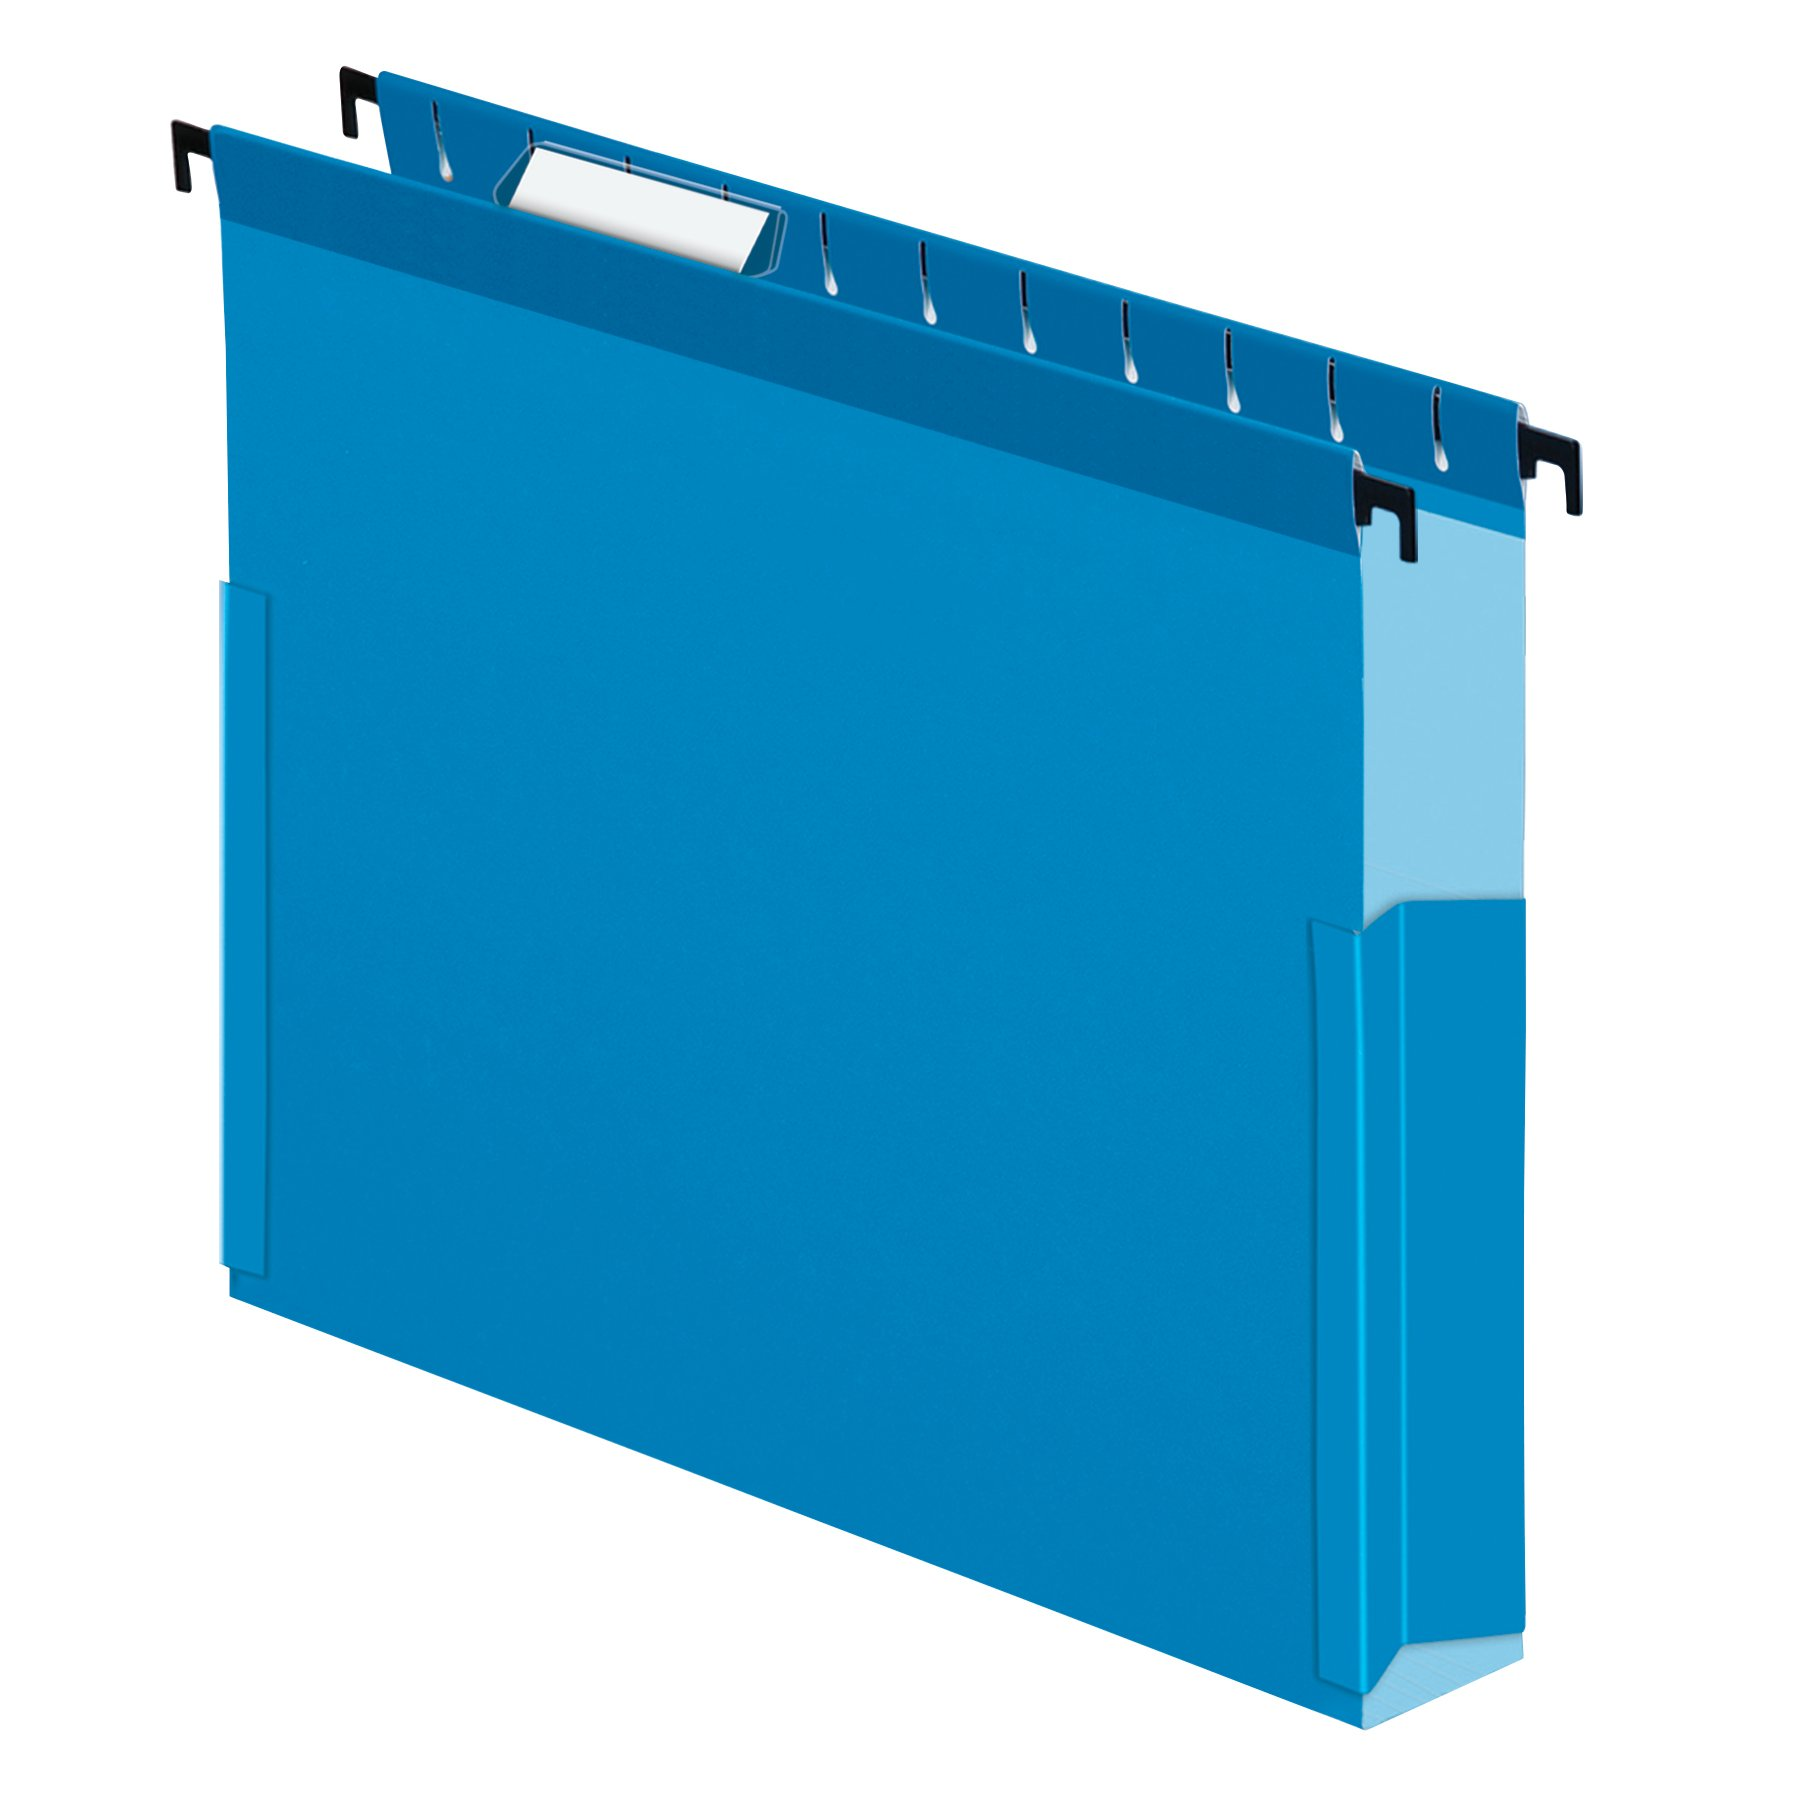 Pendaflex 59202 SureHook Reinforced Hanging Box Files, 2'' Exp with Sides, Letter, Blue (Box of 25)